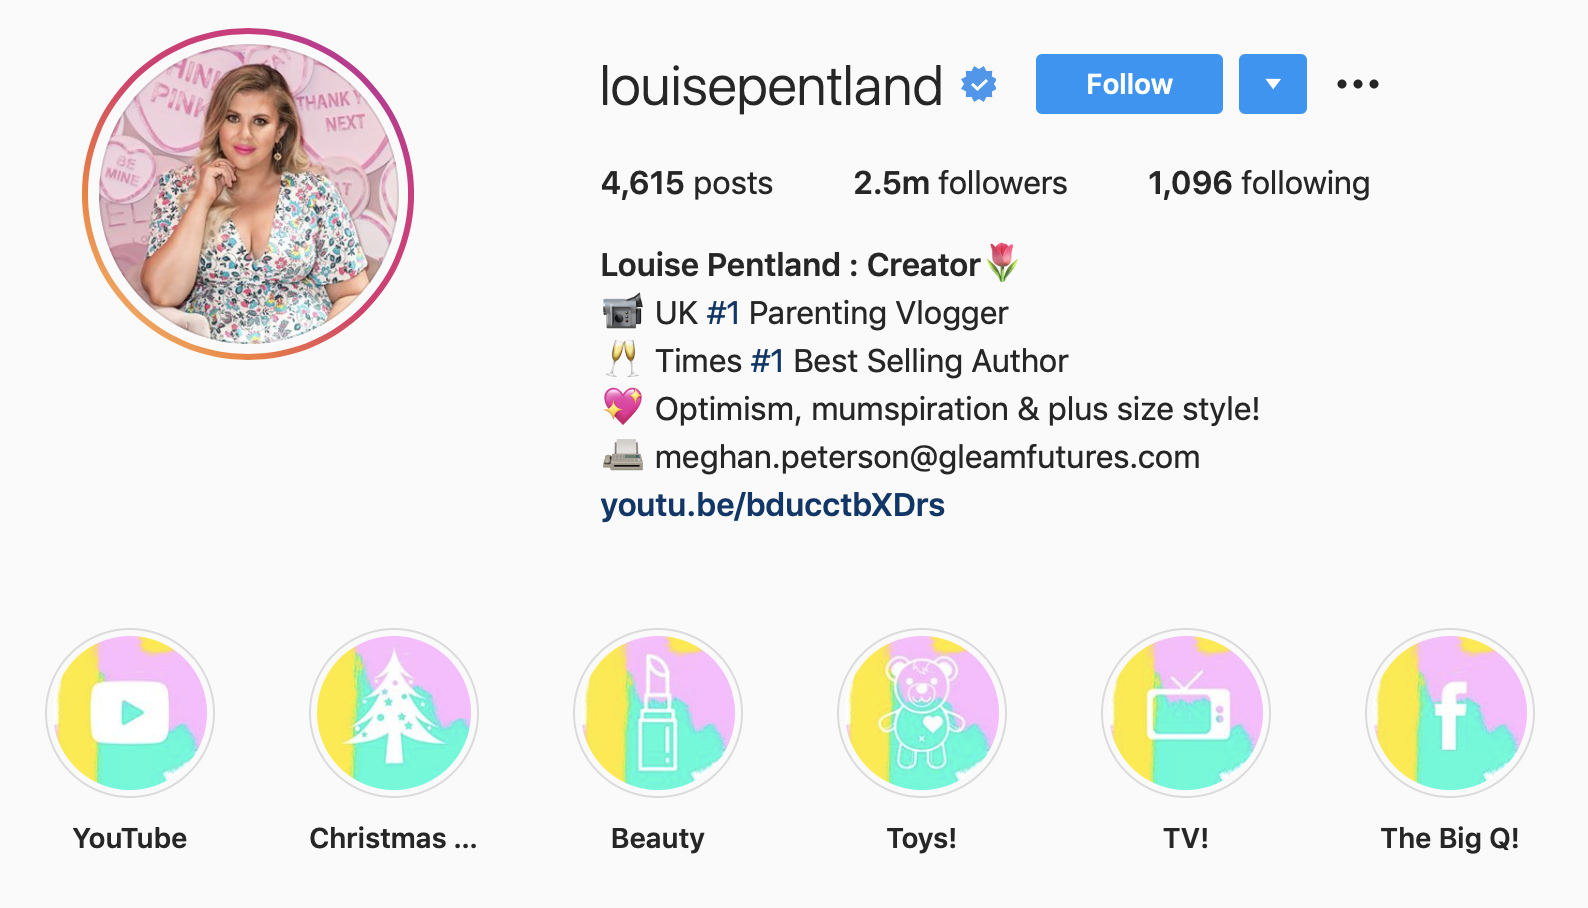 Louise Pentland | Parenting Influencer and Content Creator